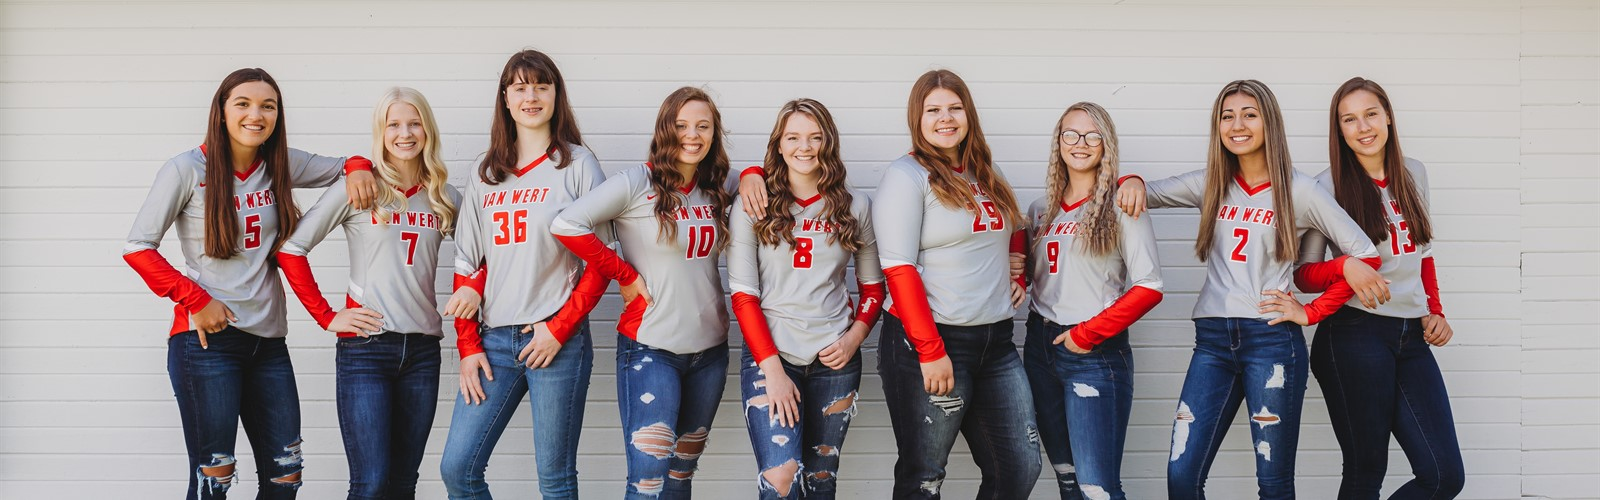 Van Wert volleyball team pose in their jerseys and jeans on front of a white barn